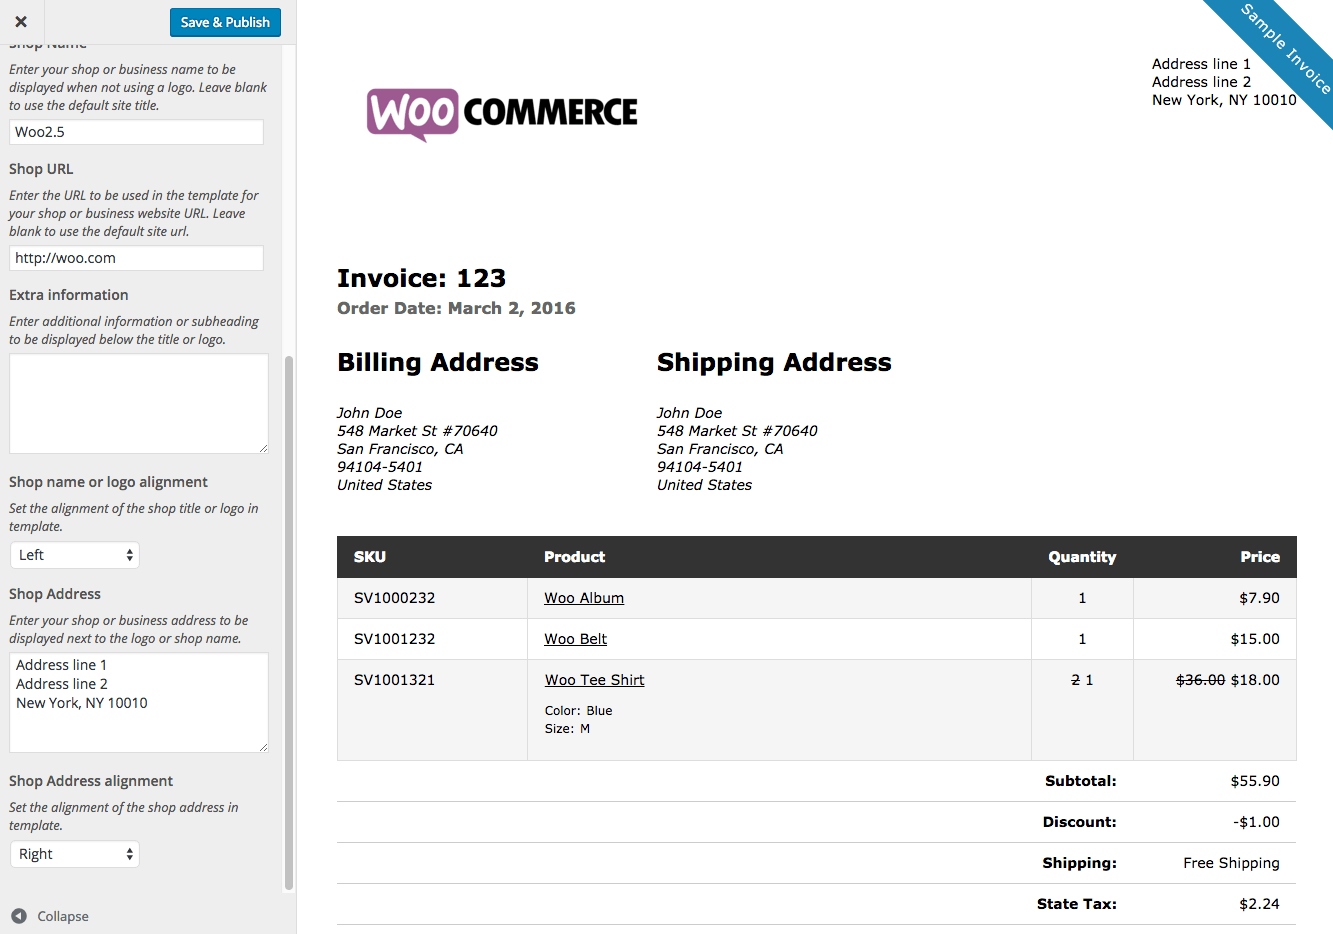 Soulfulpowerus  Surprising Woocommerce Print Invoices Amp Packing Lists  Woocommerce Docs With Gorgeous Woocommerce Print Invoices  Packing Lists Customizer With Amusing Where Can I Buy Receipt Books Also Rental Receipt Book In Addition Receipt Copier And Army Hand Receipt  As Well As Return Receipt In Gmail Additionally Cash Receipt Sample From Docswoocommercecom With Soulfulpowerus  Gorgeous Woocommerce Print Invoices Amp Packing Lists  Woocommerce Docs With Amusing Woocommerce Print Invoices  Packing Lists Customizer And Surprising Where Can I Buy Receipt Books Also Rental Receipt Book In Addition Receipt Copier From Docswoocommercecom